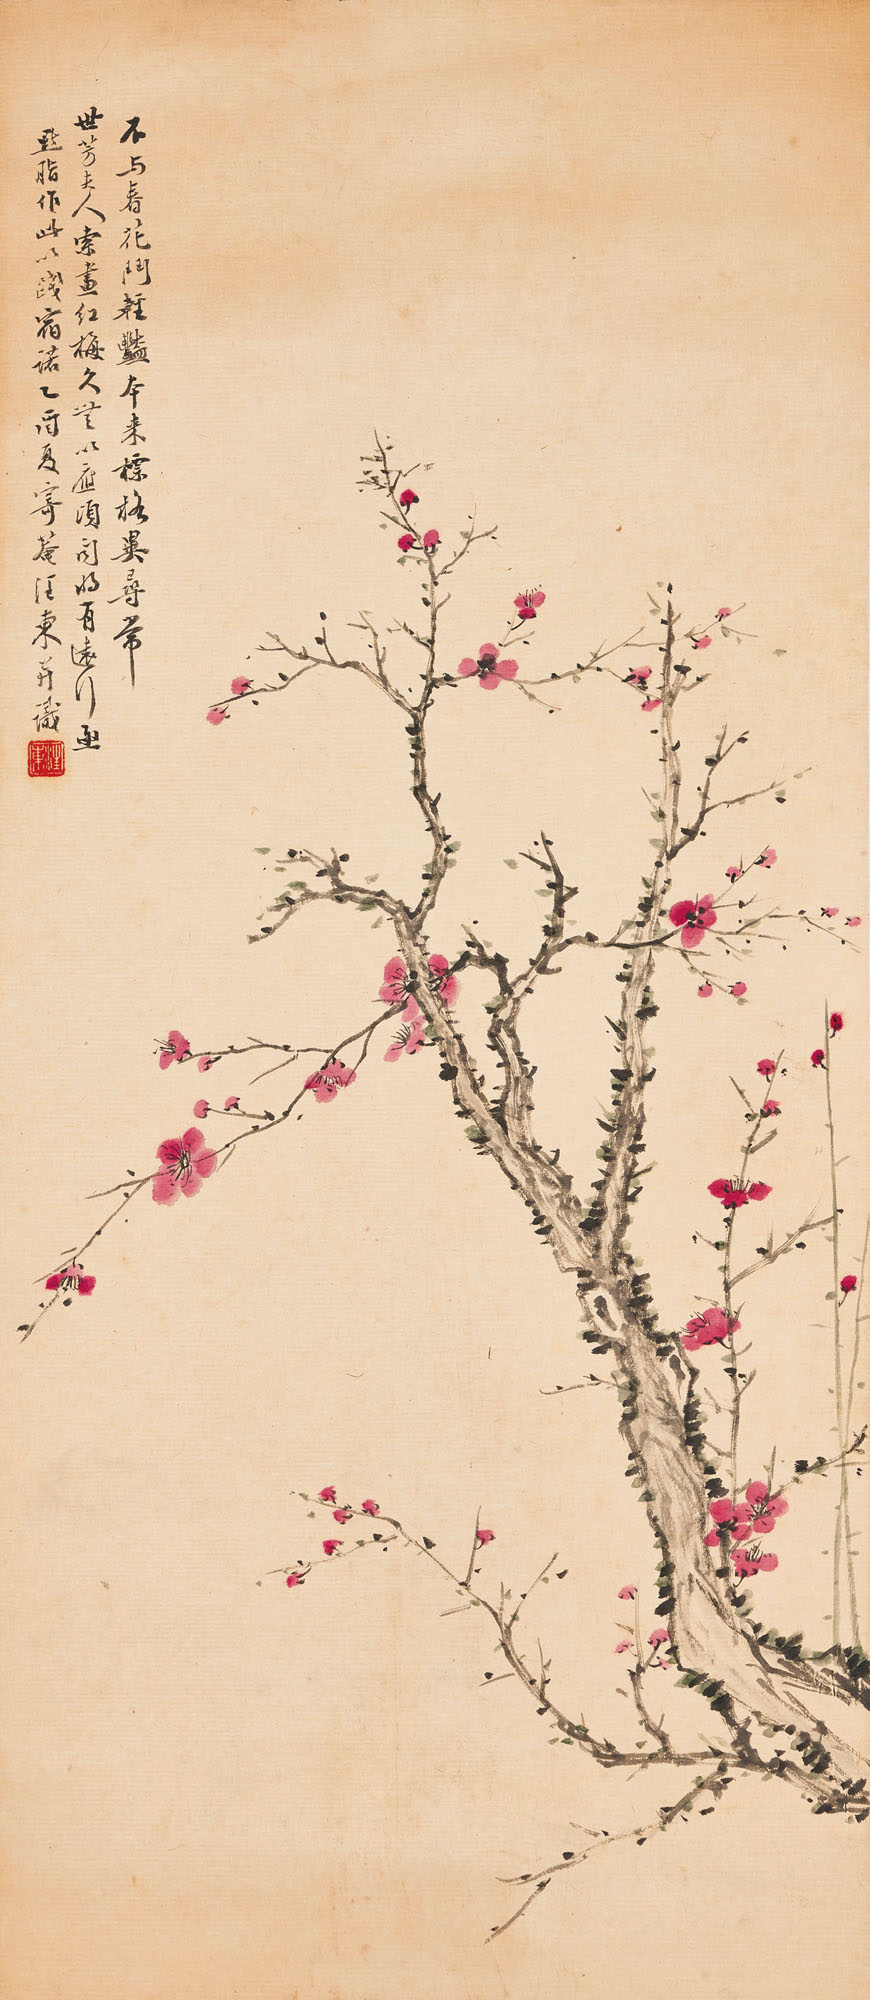 On Wings of Song: Chinese Paintings and Calligraphy from the Collection of Robert van Gulik